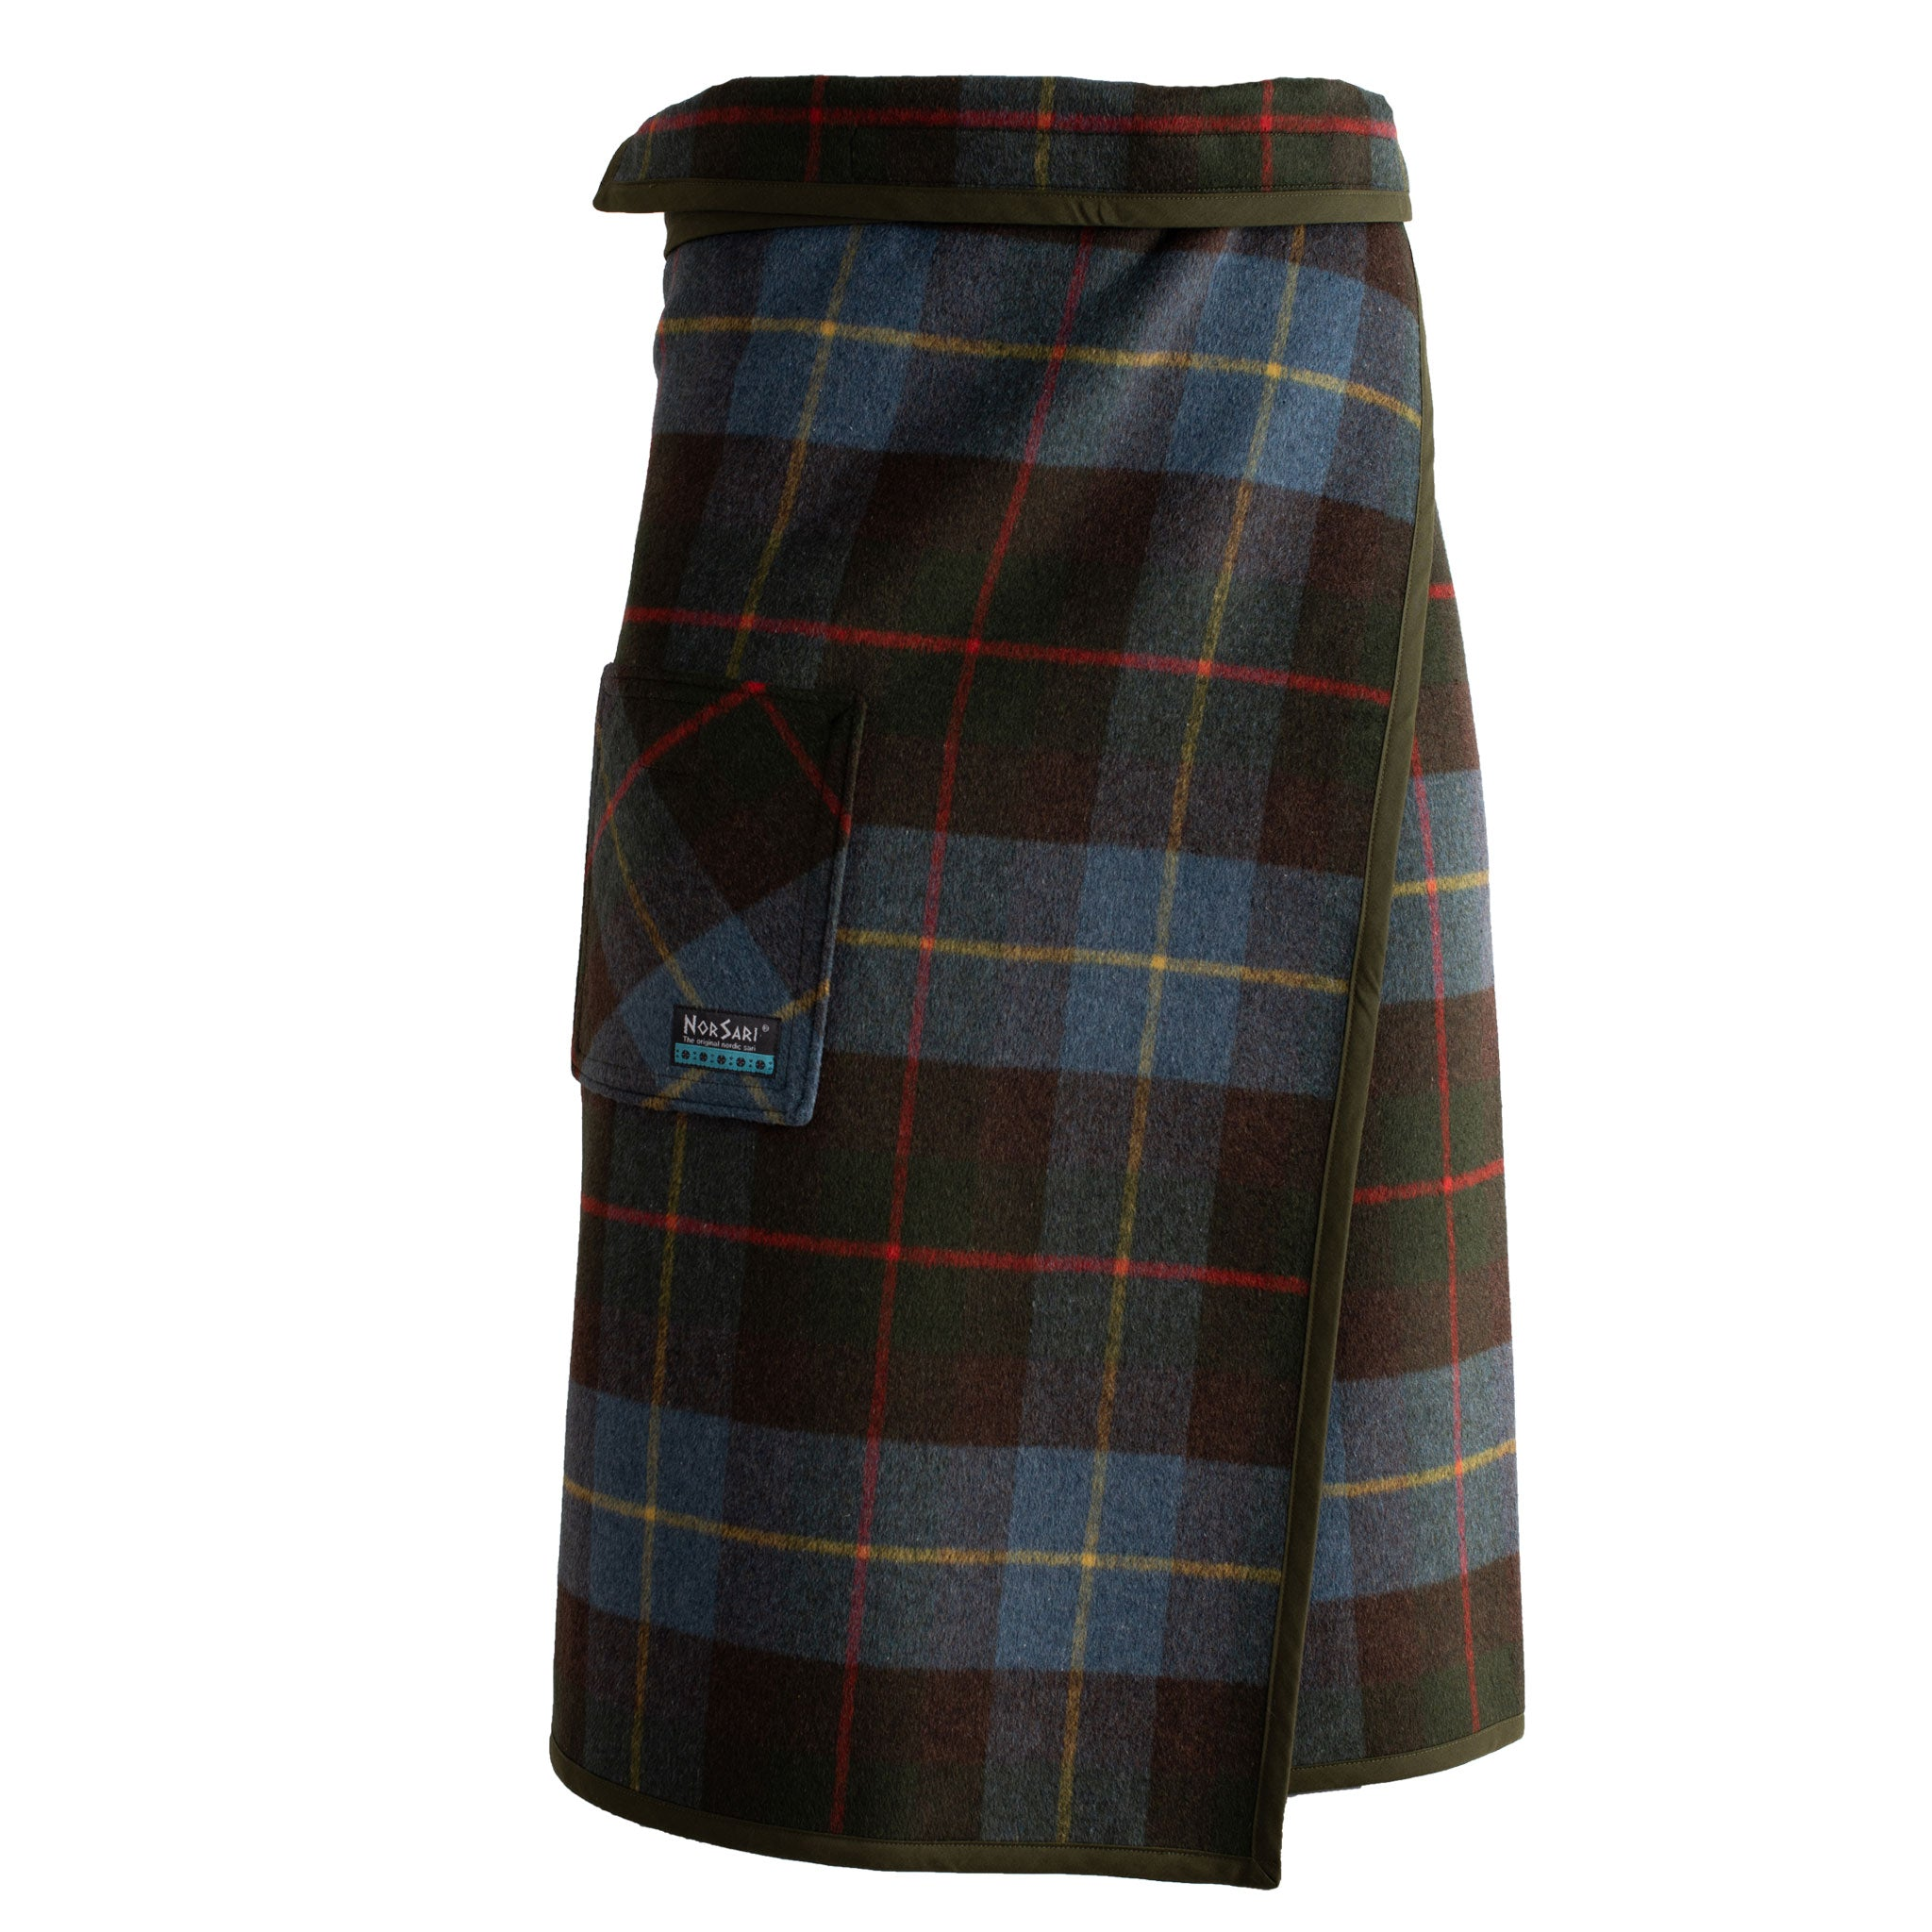 The Greenwatch Plaid